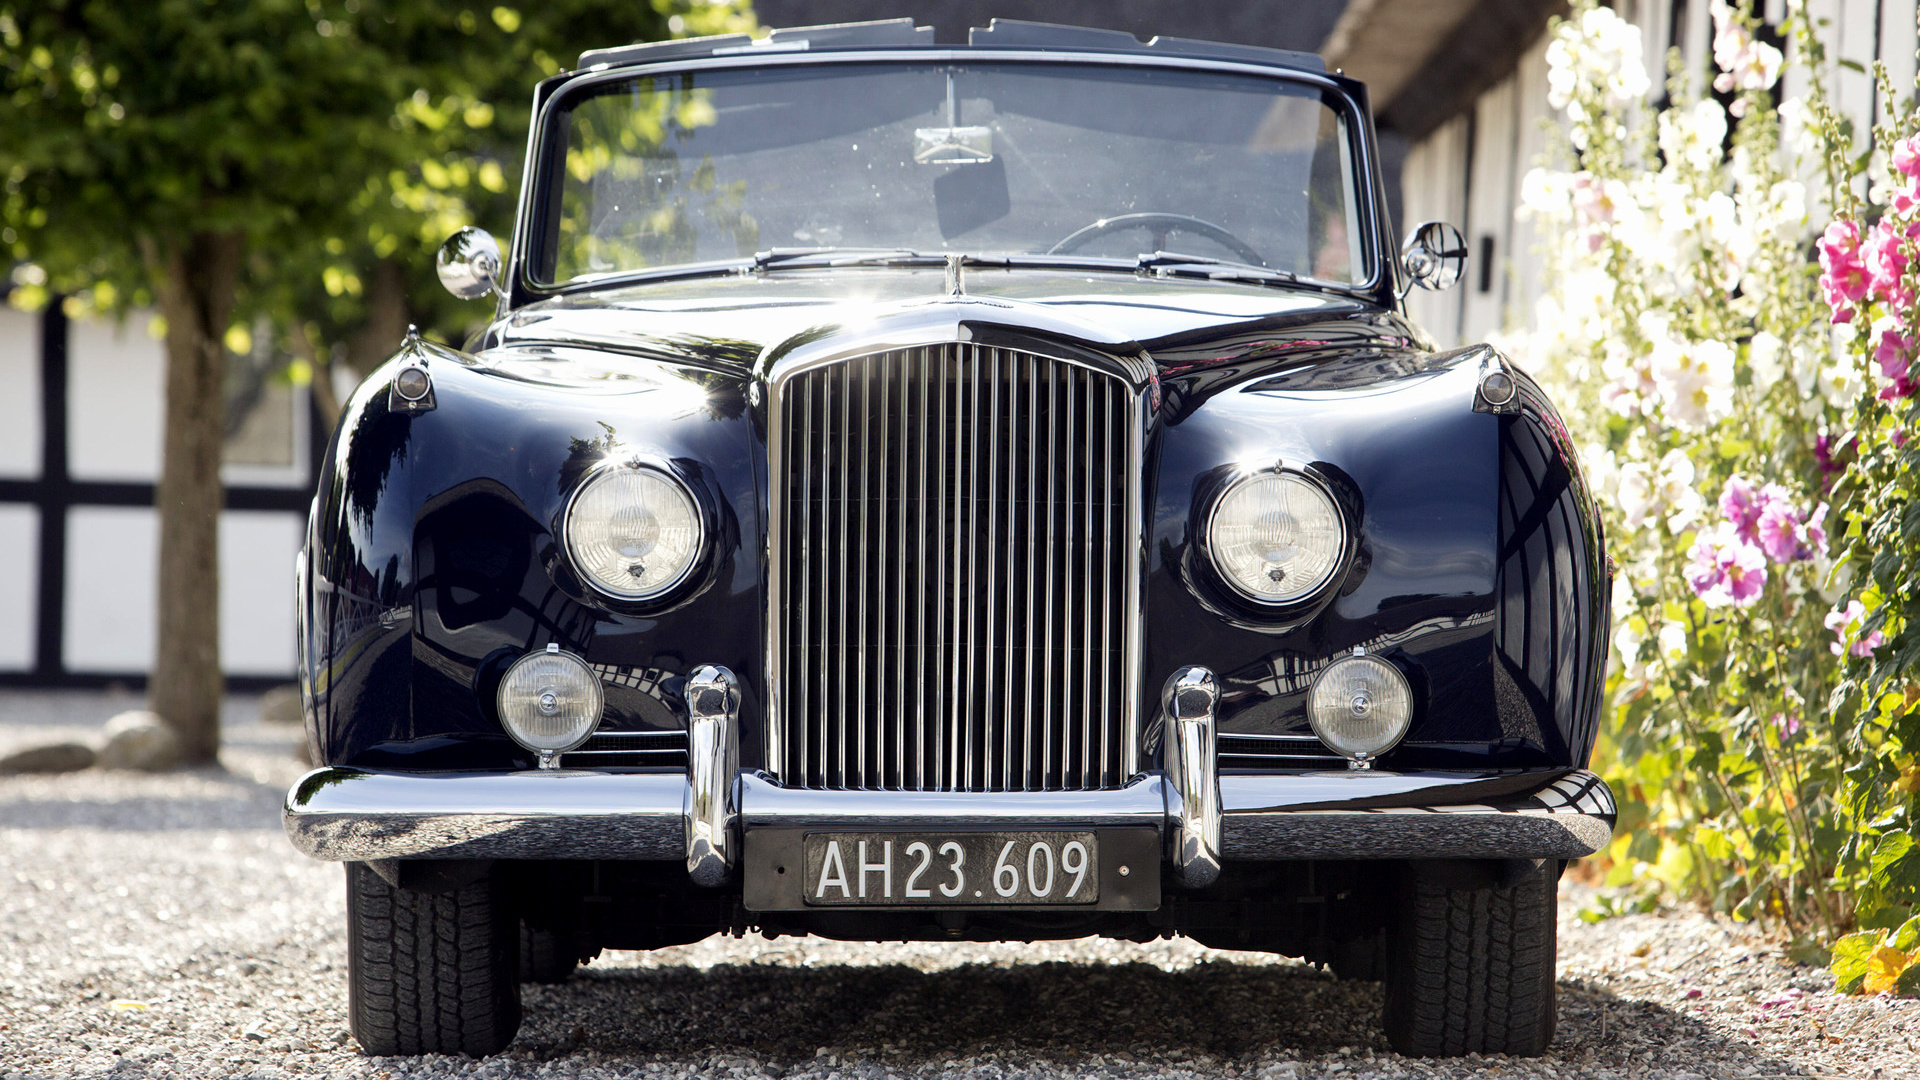 1956 bentley s1 drophead coupe by mulliner wallpapers. Black Bedroom Furniture Sets. Home Design Ideas